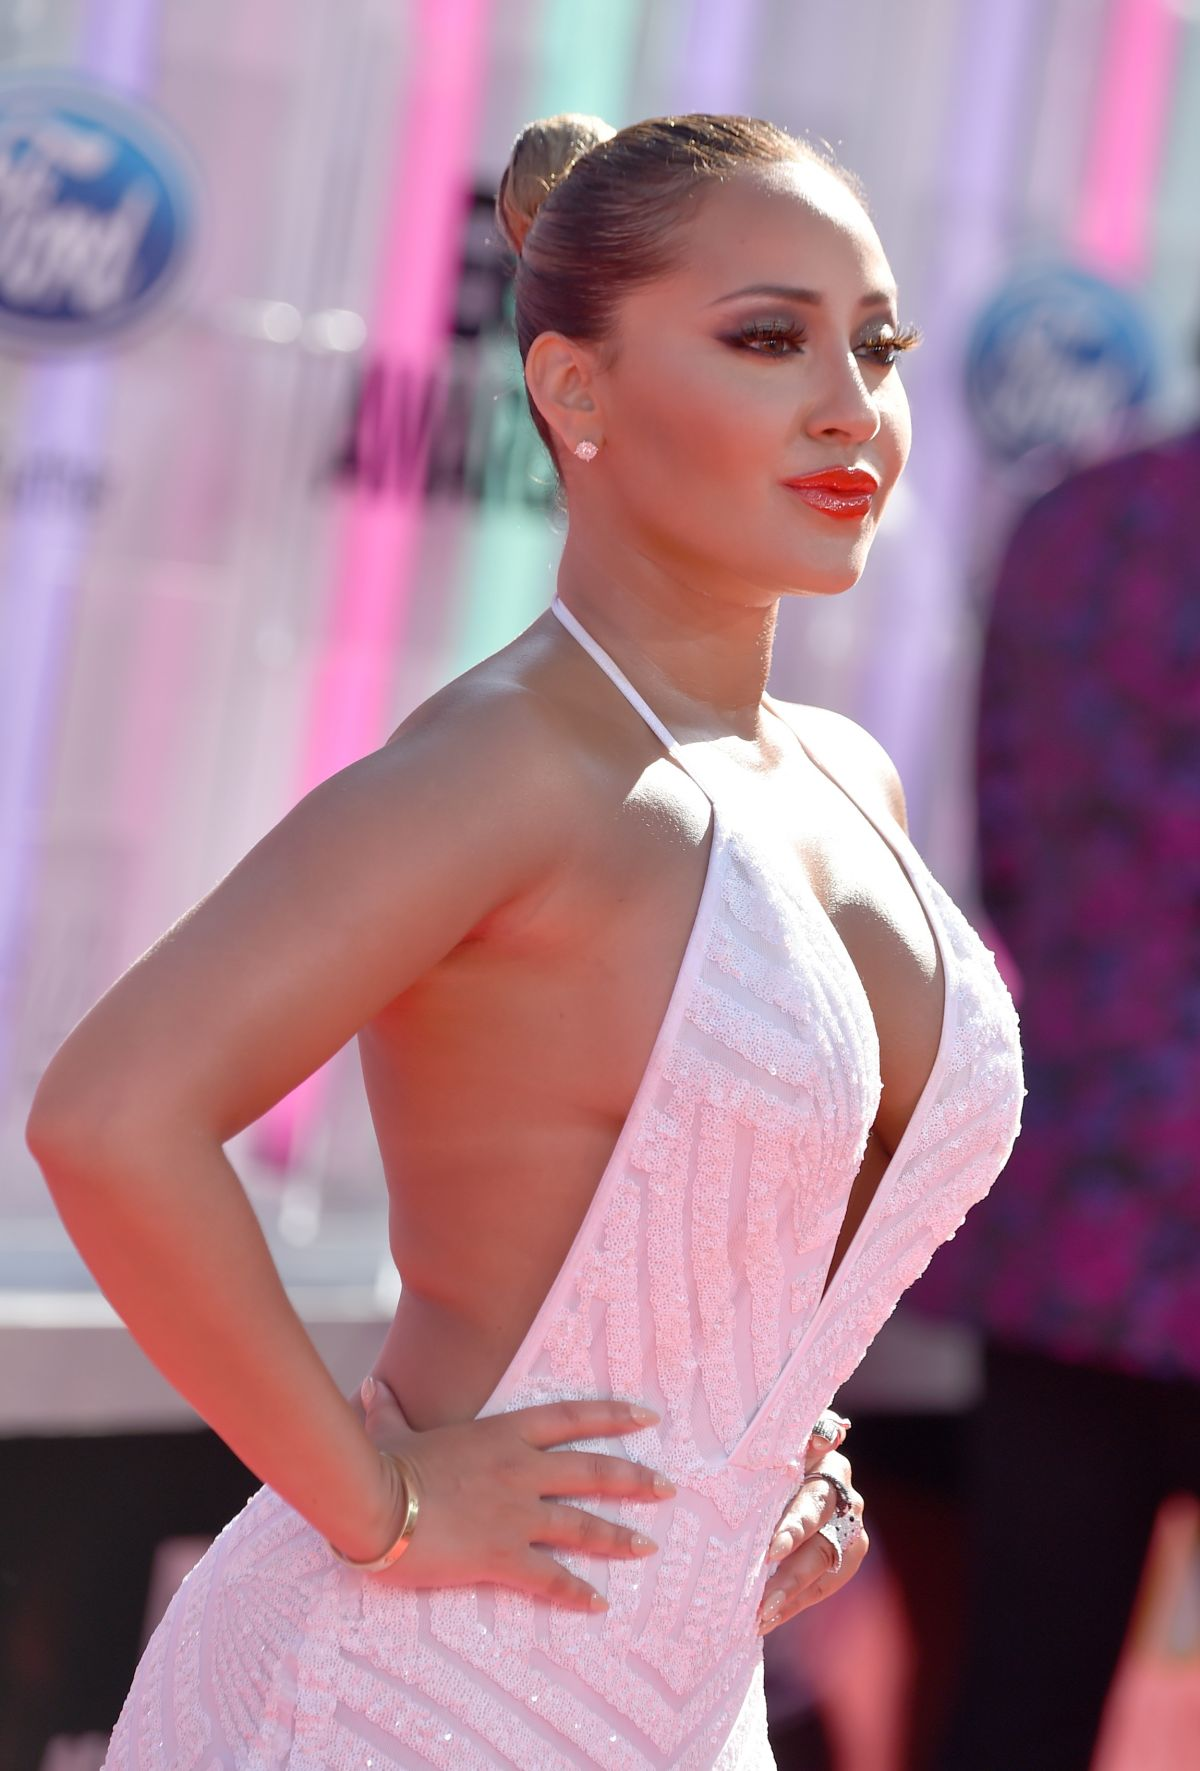 ADRIENNE BAILON at 2014 Bet Awards in Los Angeles